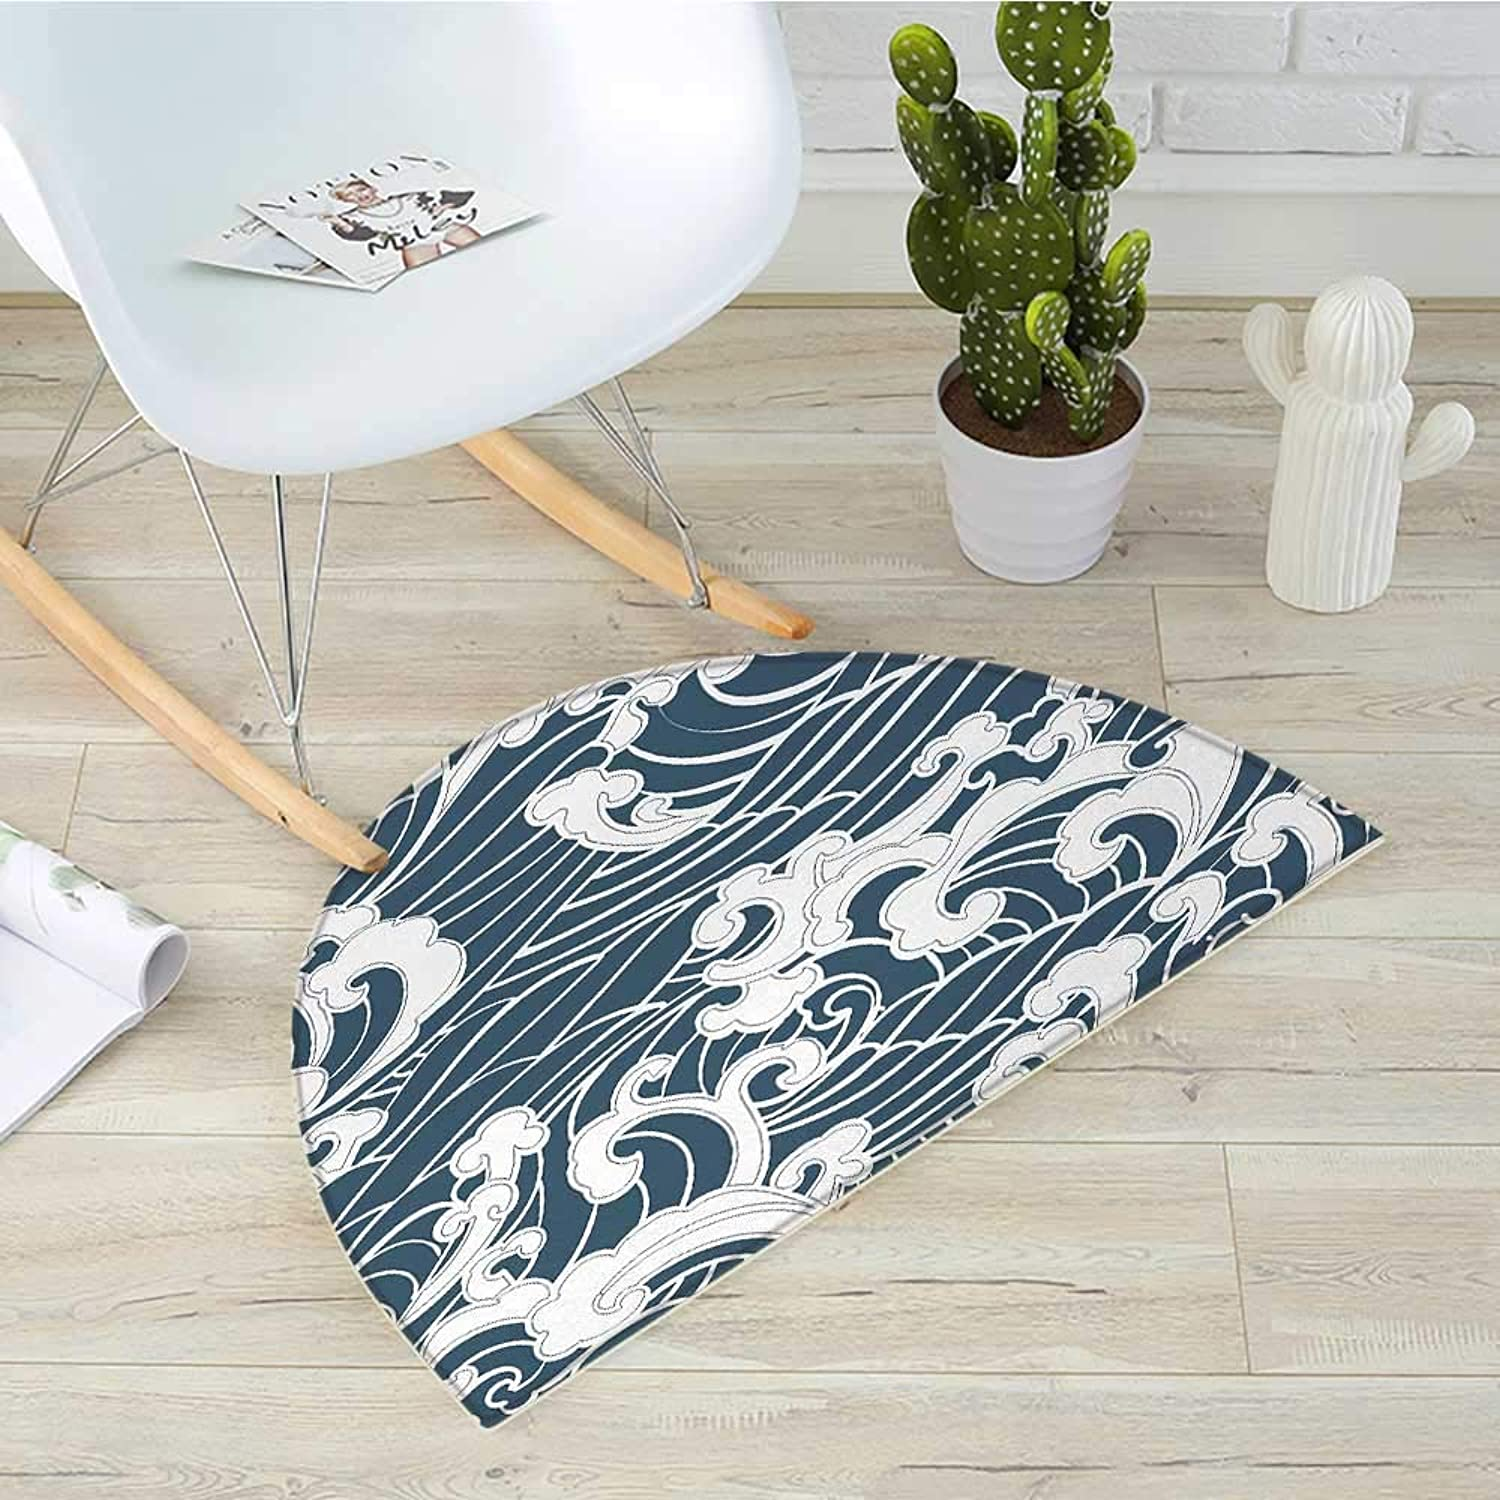 Japanese Wave Half Round Door mats Hand Drawn Traditional Style Aquatic Doodle River Storm Retro Abstract Bathroom Mat H 43.3  xD 64.9  Slate bluee White